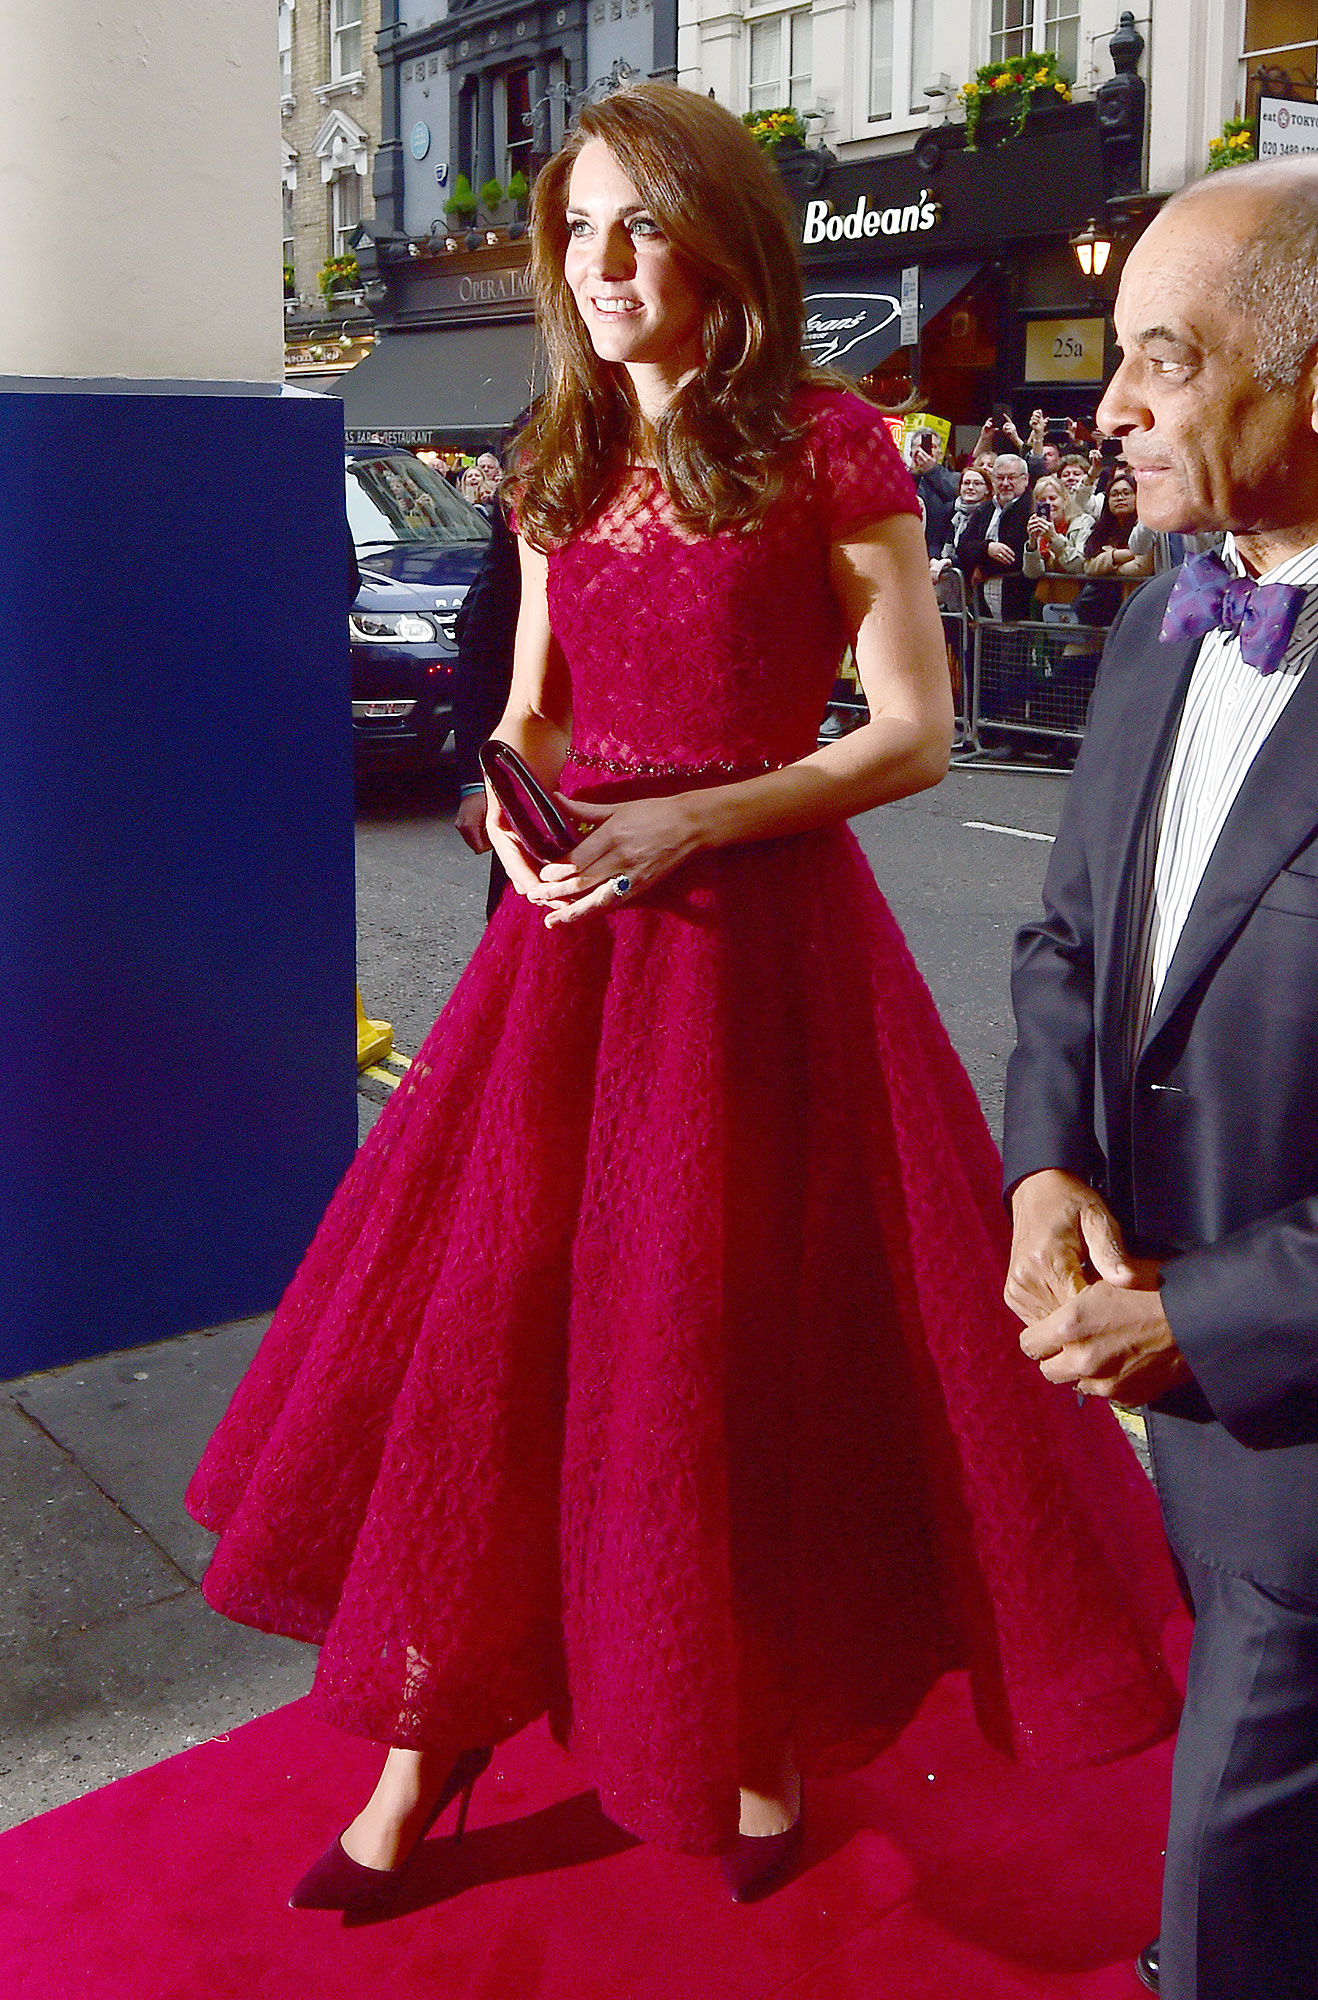 Duchess of Cambridge attends the opening night of 42nd Street